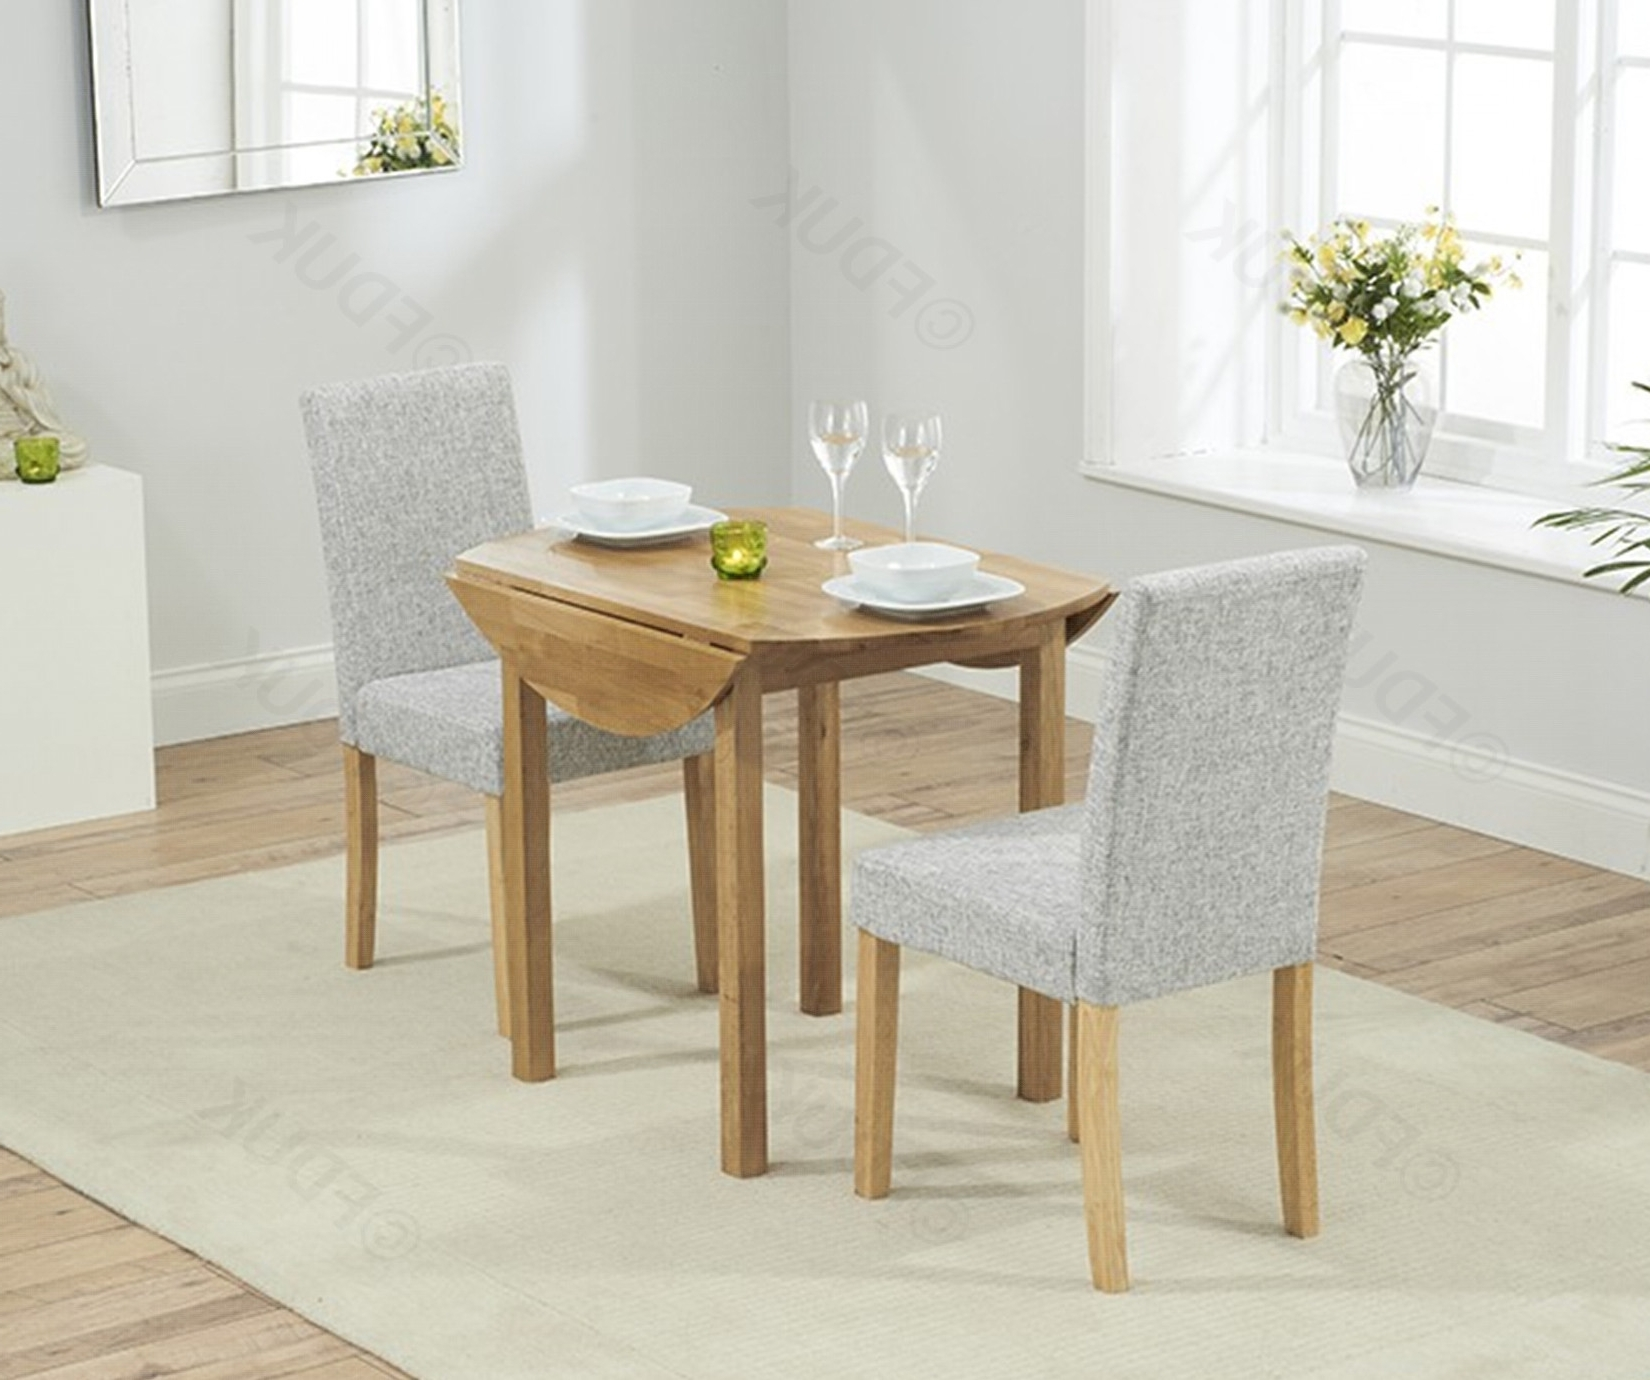 Promo Oak Round Extending Dining Table With 2 In Round Extending Oak Dining Tables And Chairs (View 17 of 25)